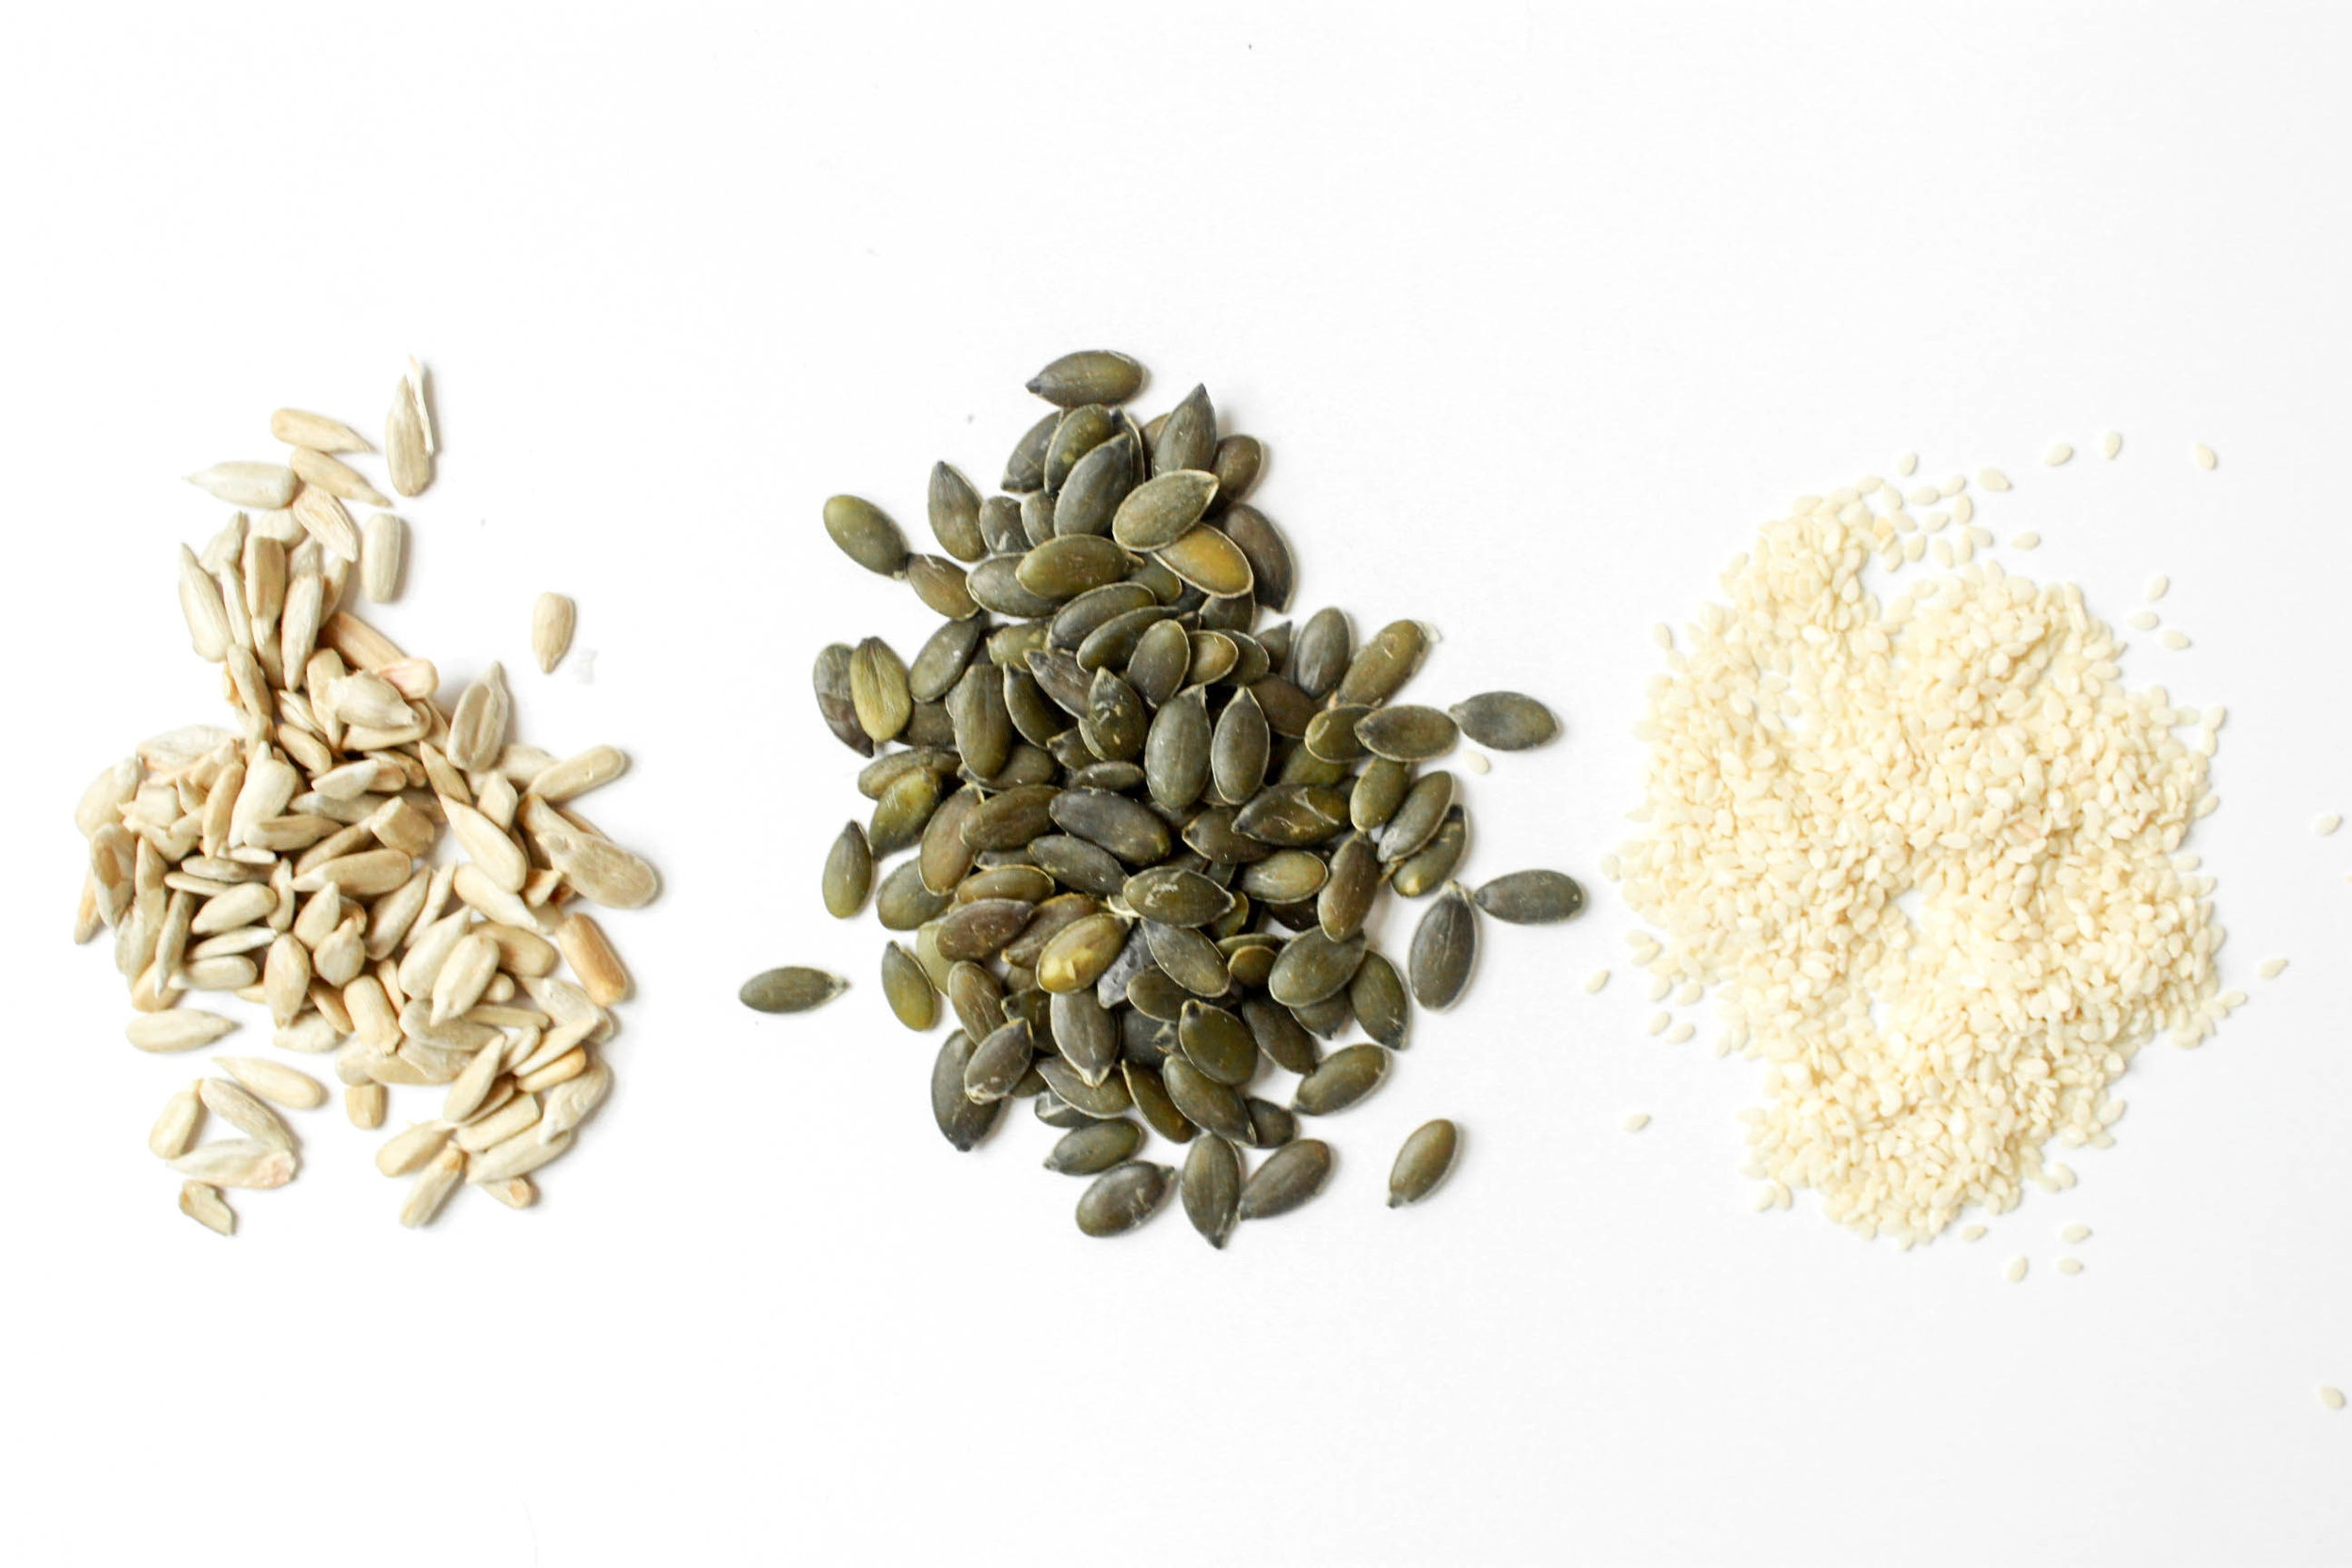 All of our seeds are hand roasted, without oil or salt. Flax, sunflower seeds, pepitas, and sesame seeds are some of our favorites. They contain healthy fats, fiber, iron, calcium, and magnesium that help to boost energy levels and prevent hypertension.